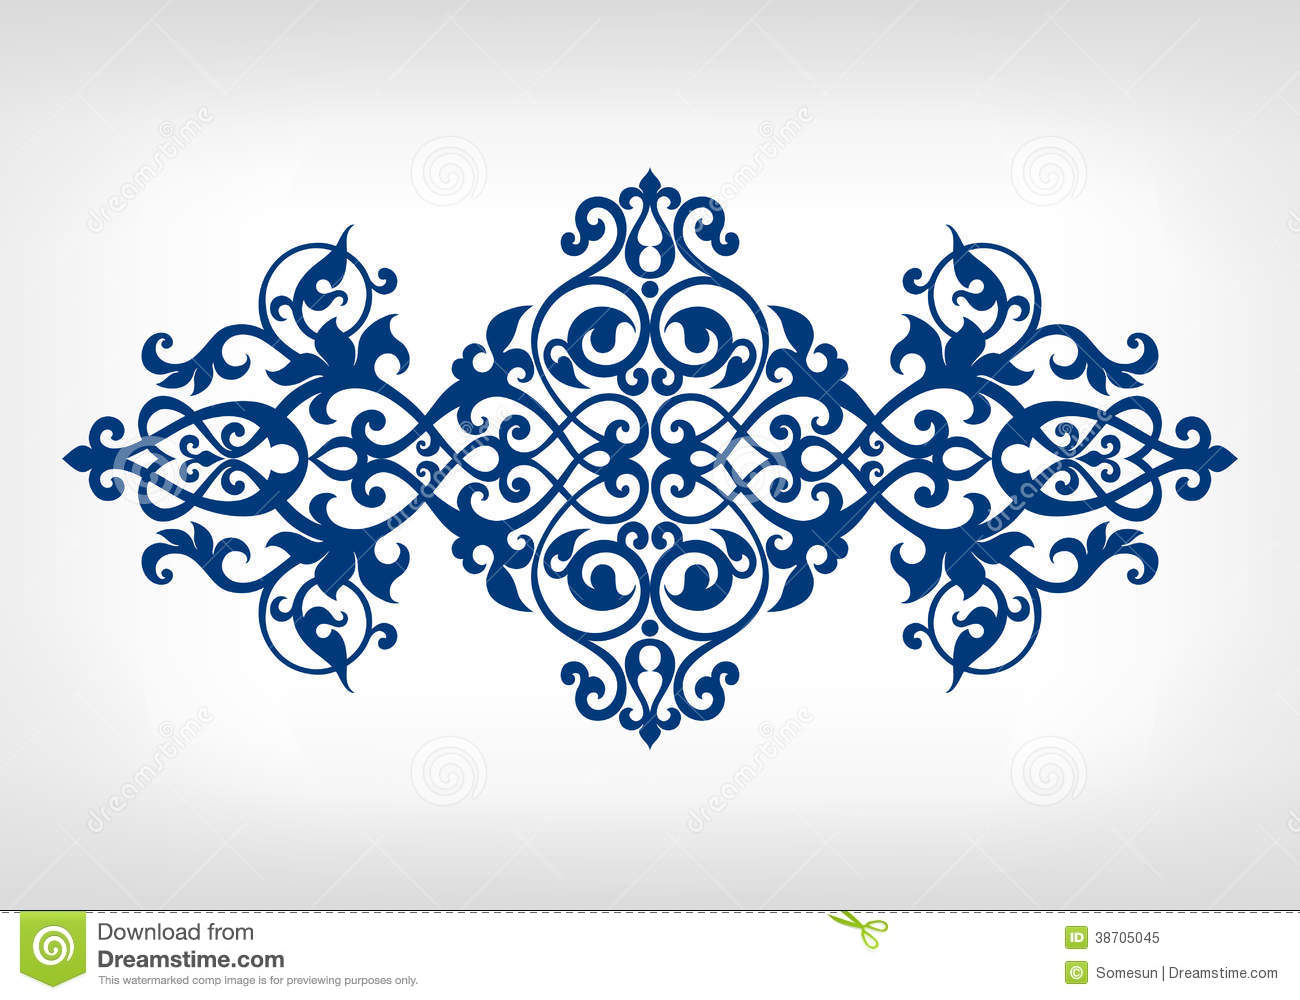 Islamic Calligraphy Border Designs